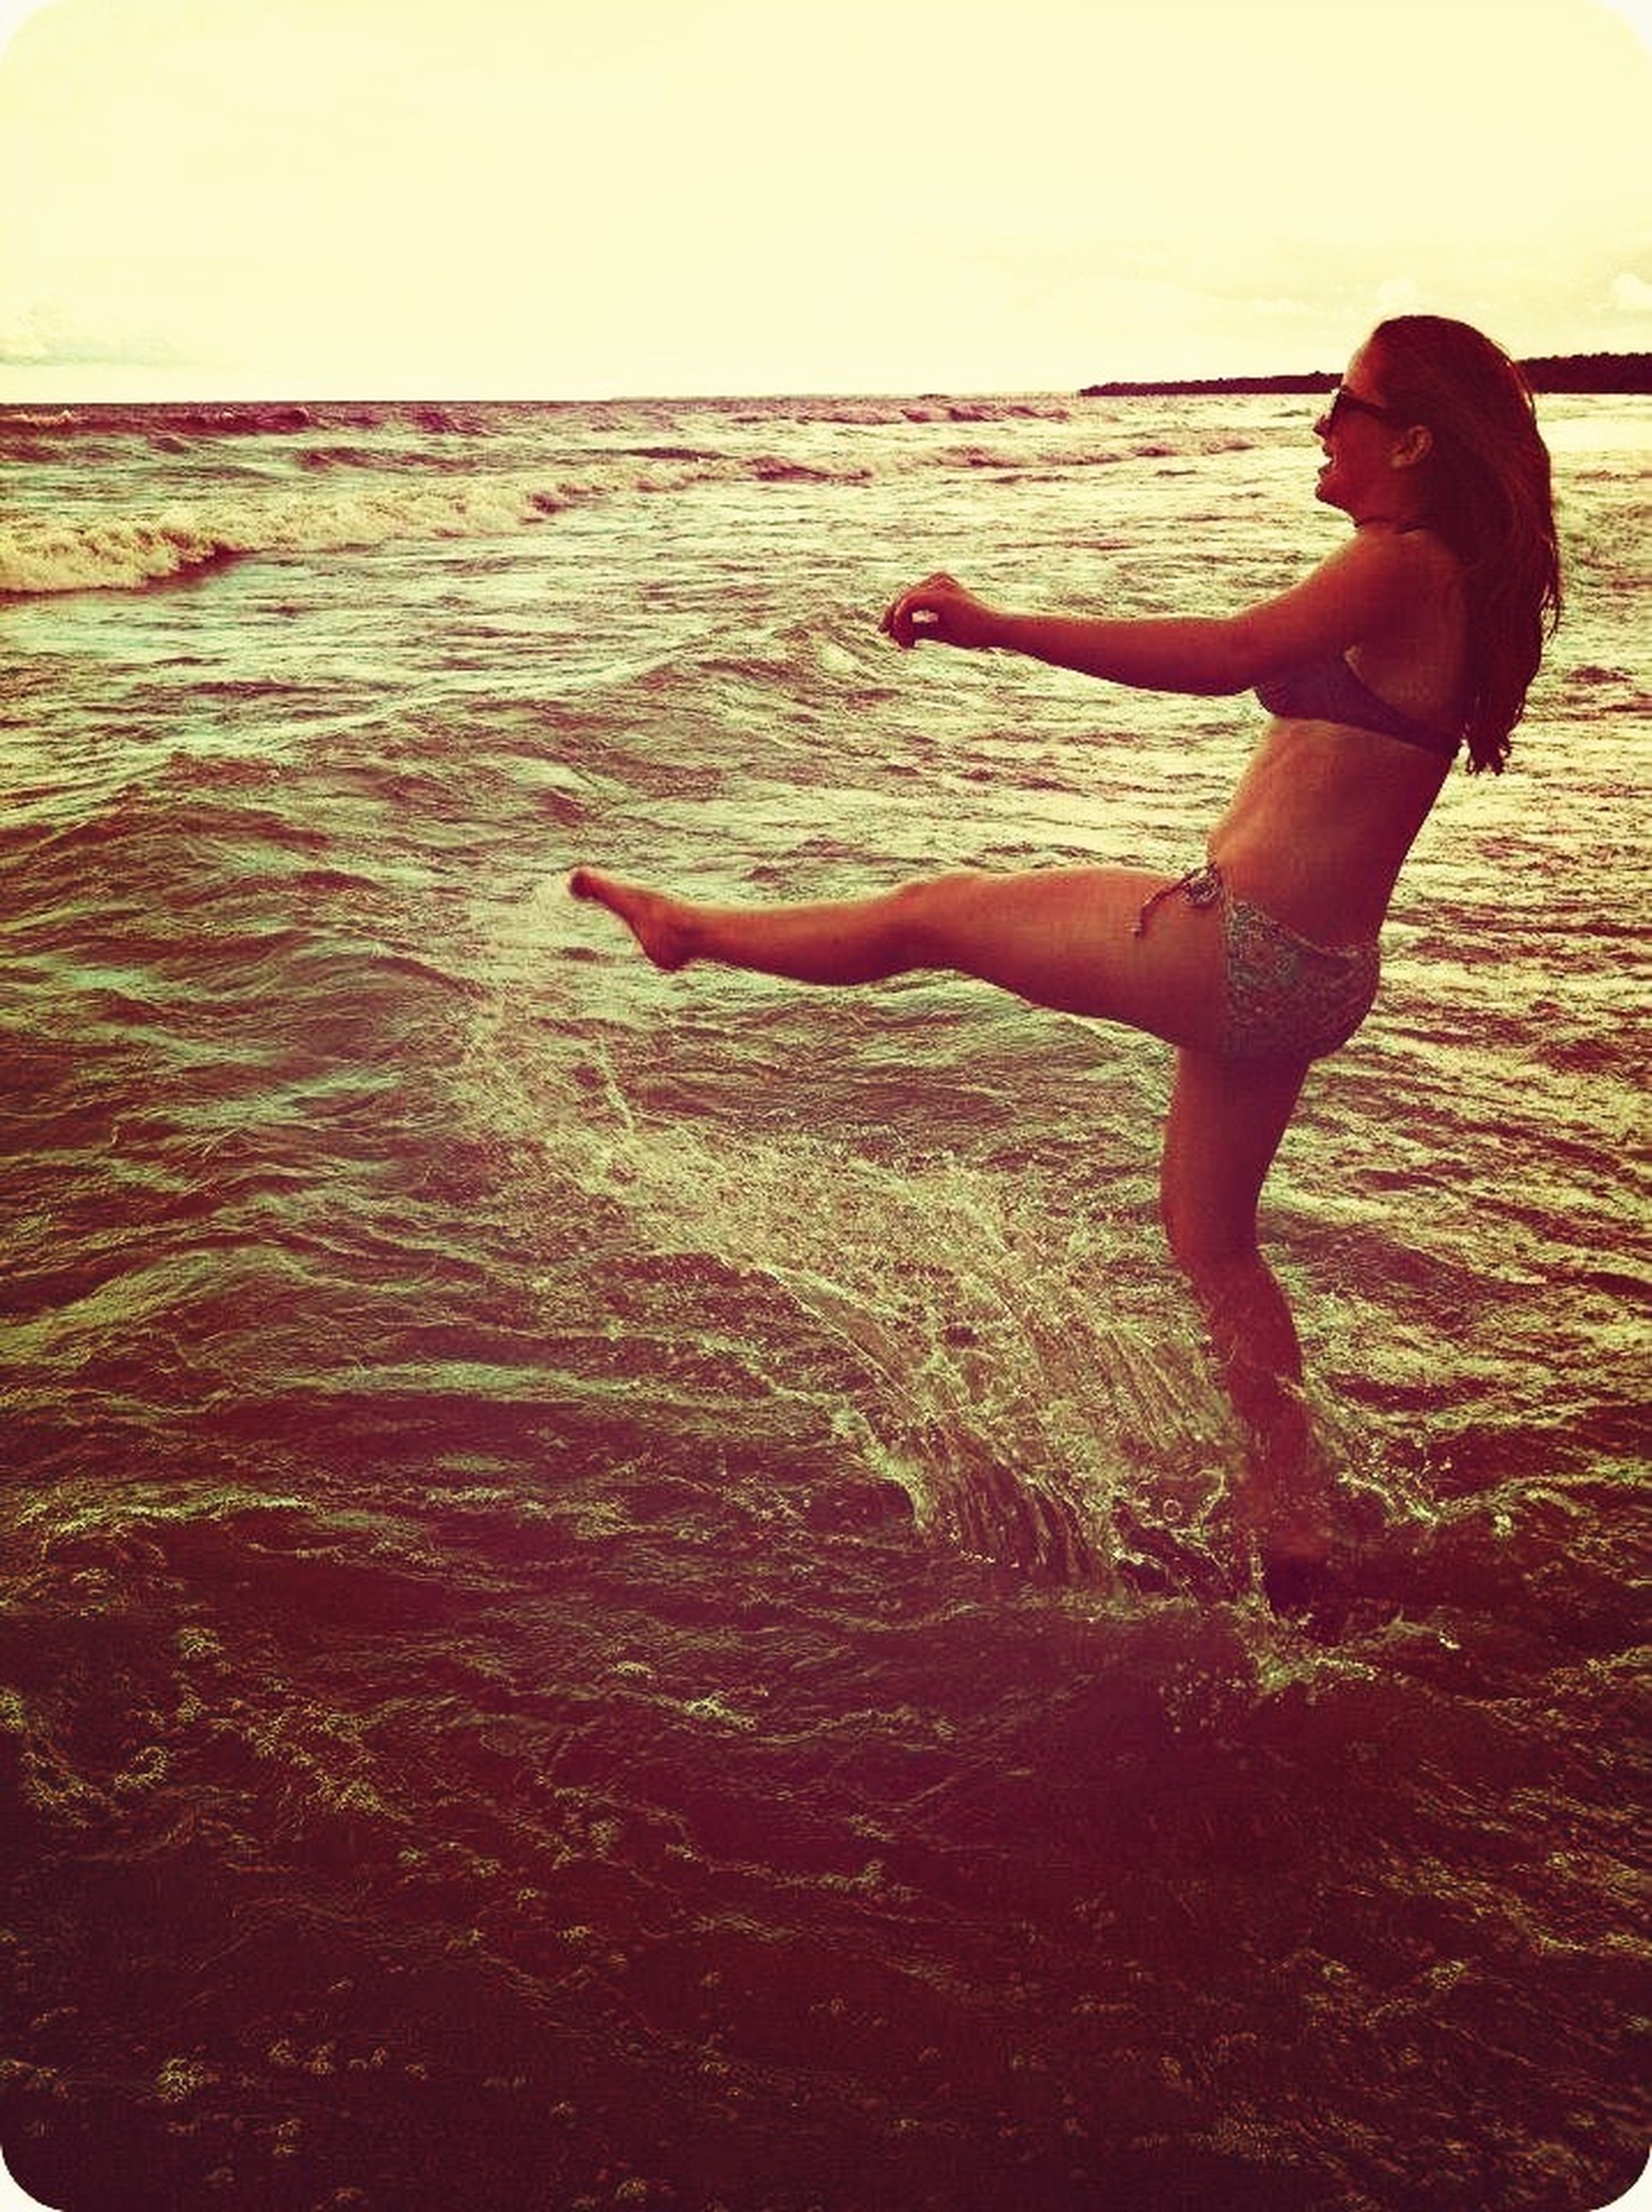 lifestyles, leisure activity, full length, young adult, casual clothing, standing, young women, person, arms outstretched, enjoyment, side view, carefree, fun, holding, sunset, arms raised, mid-air, skill